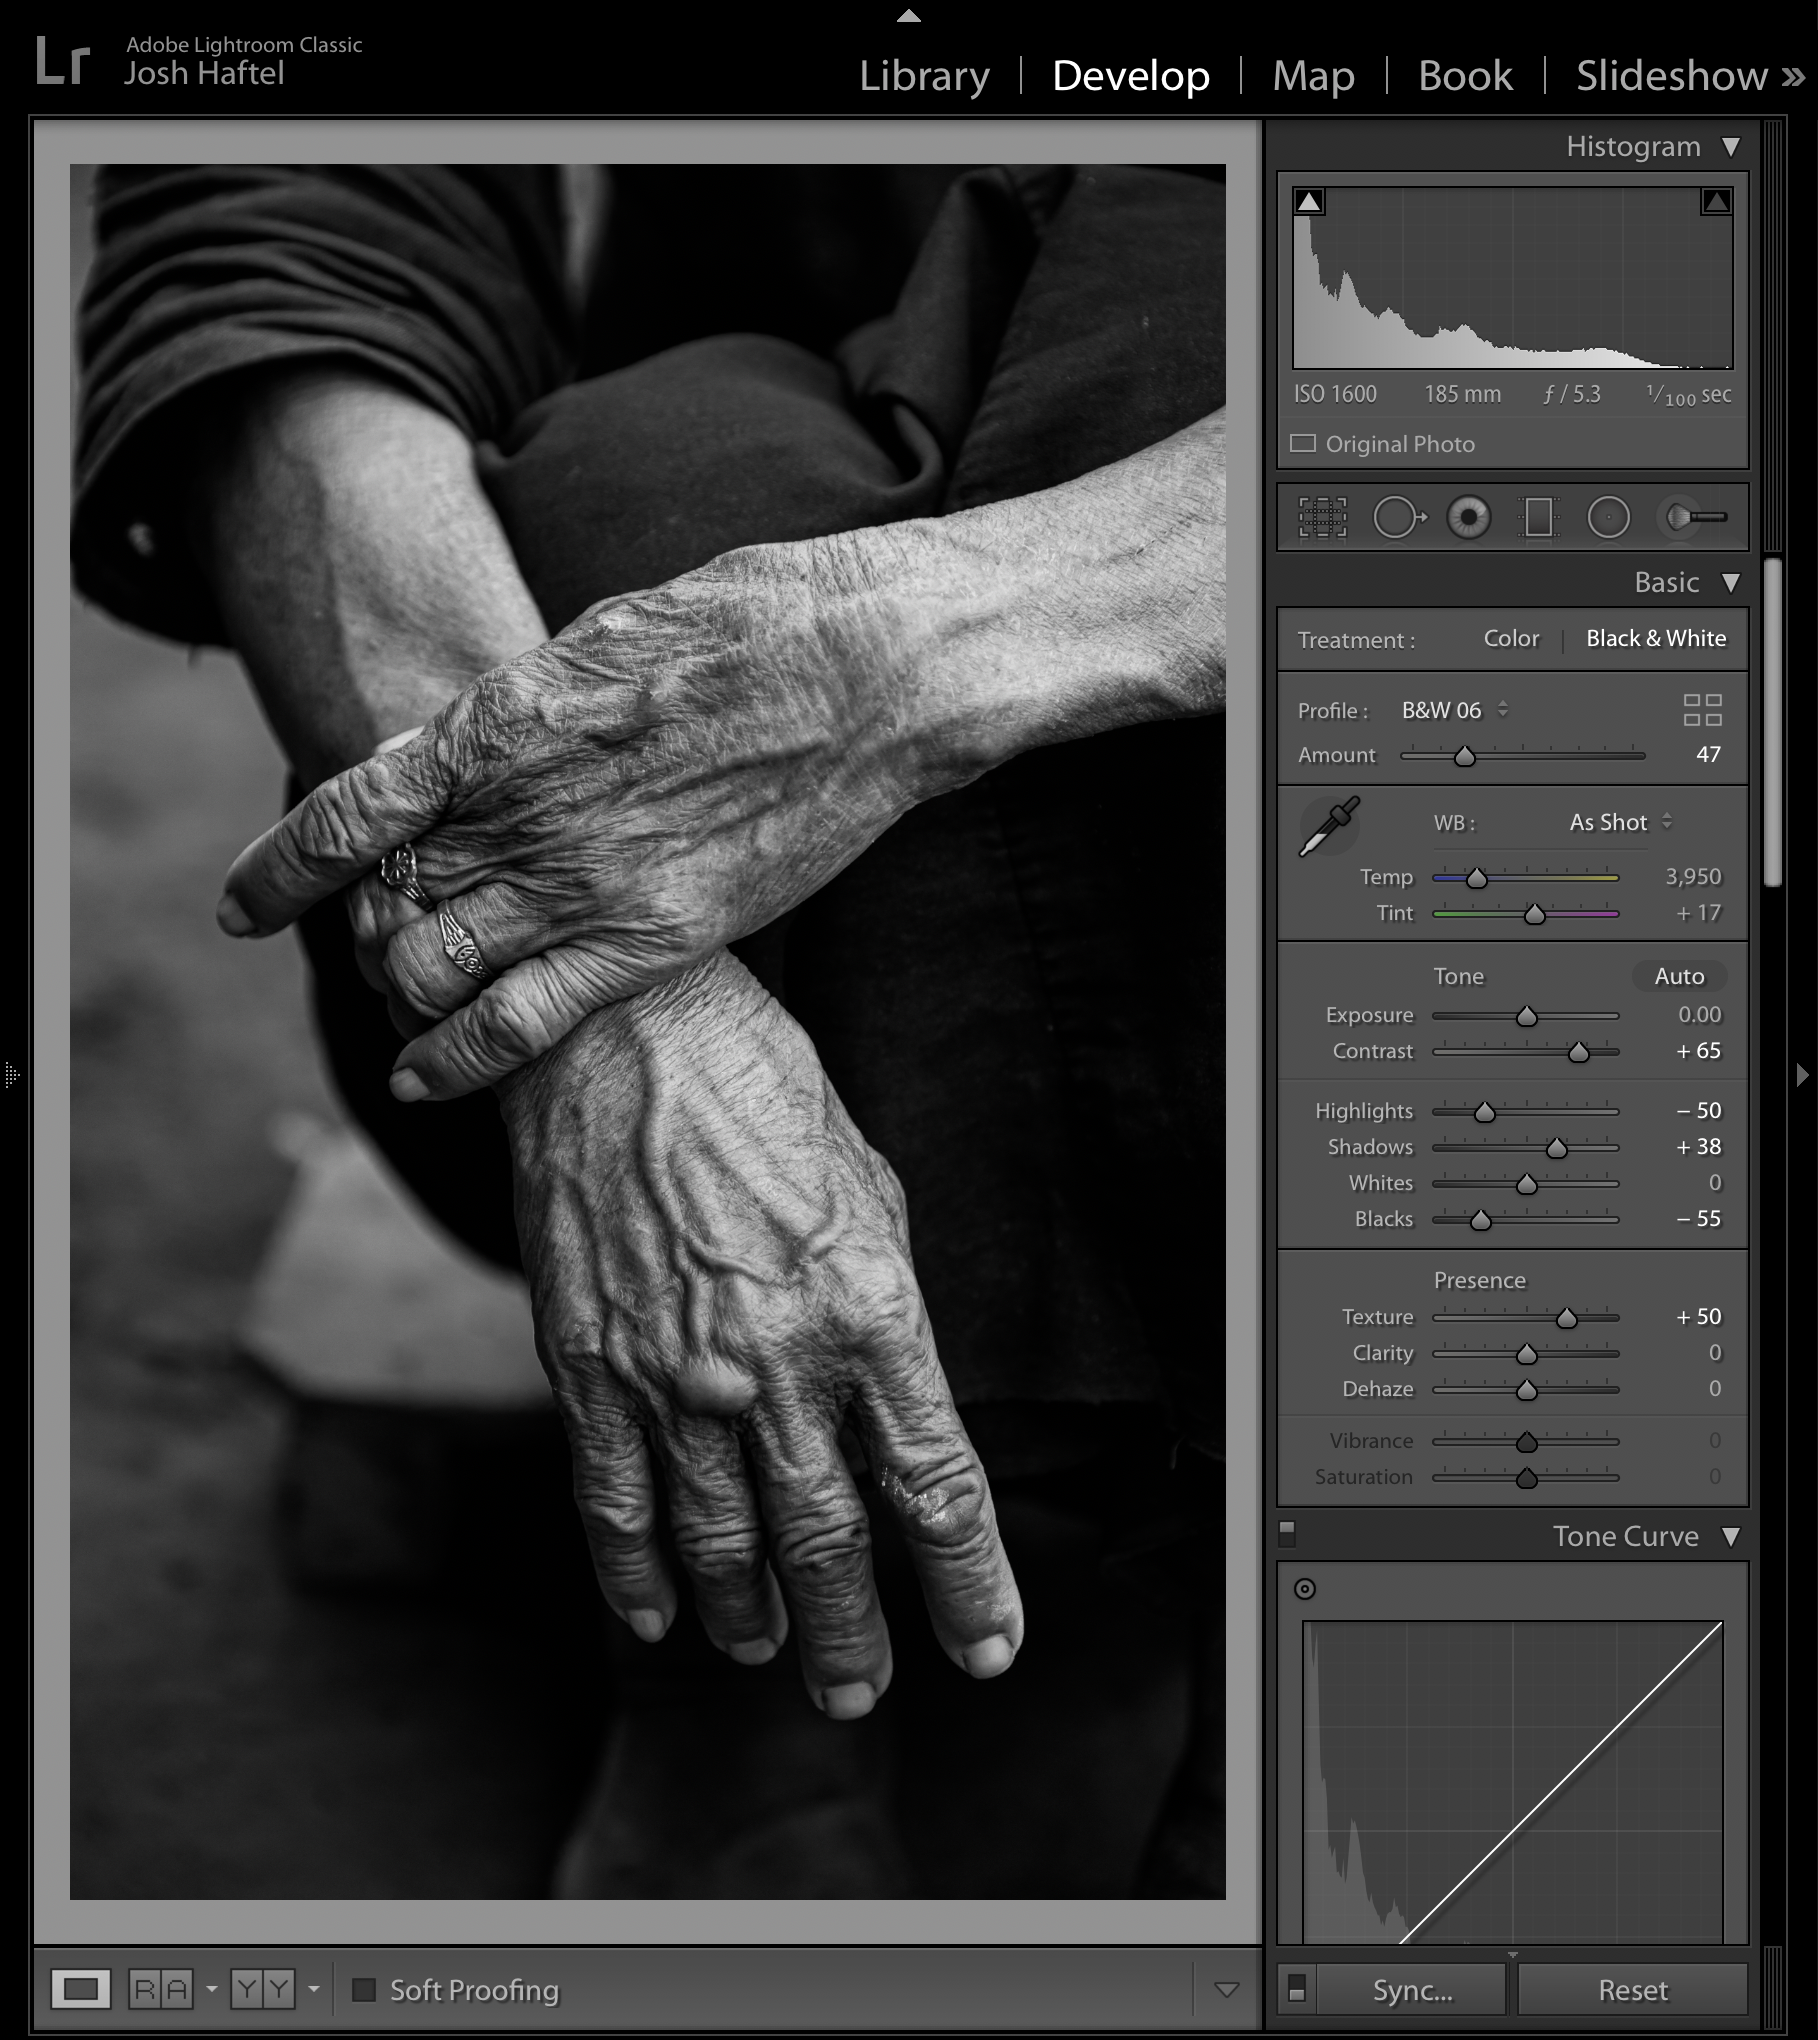 Adobe Lightroom adds tutorials, shared albums and texture control